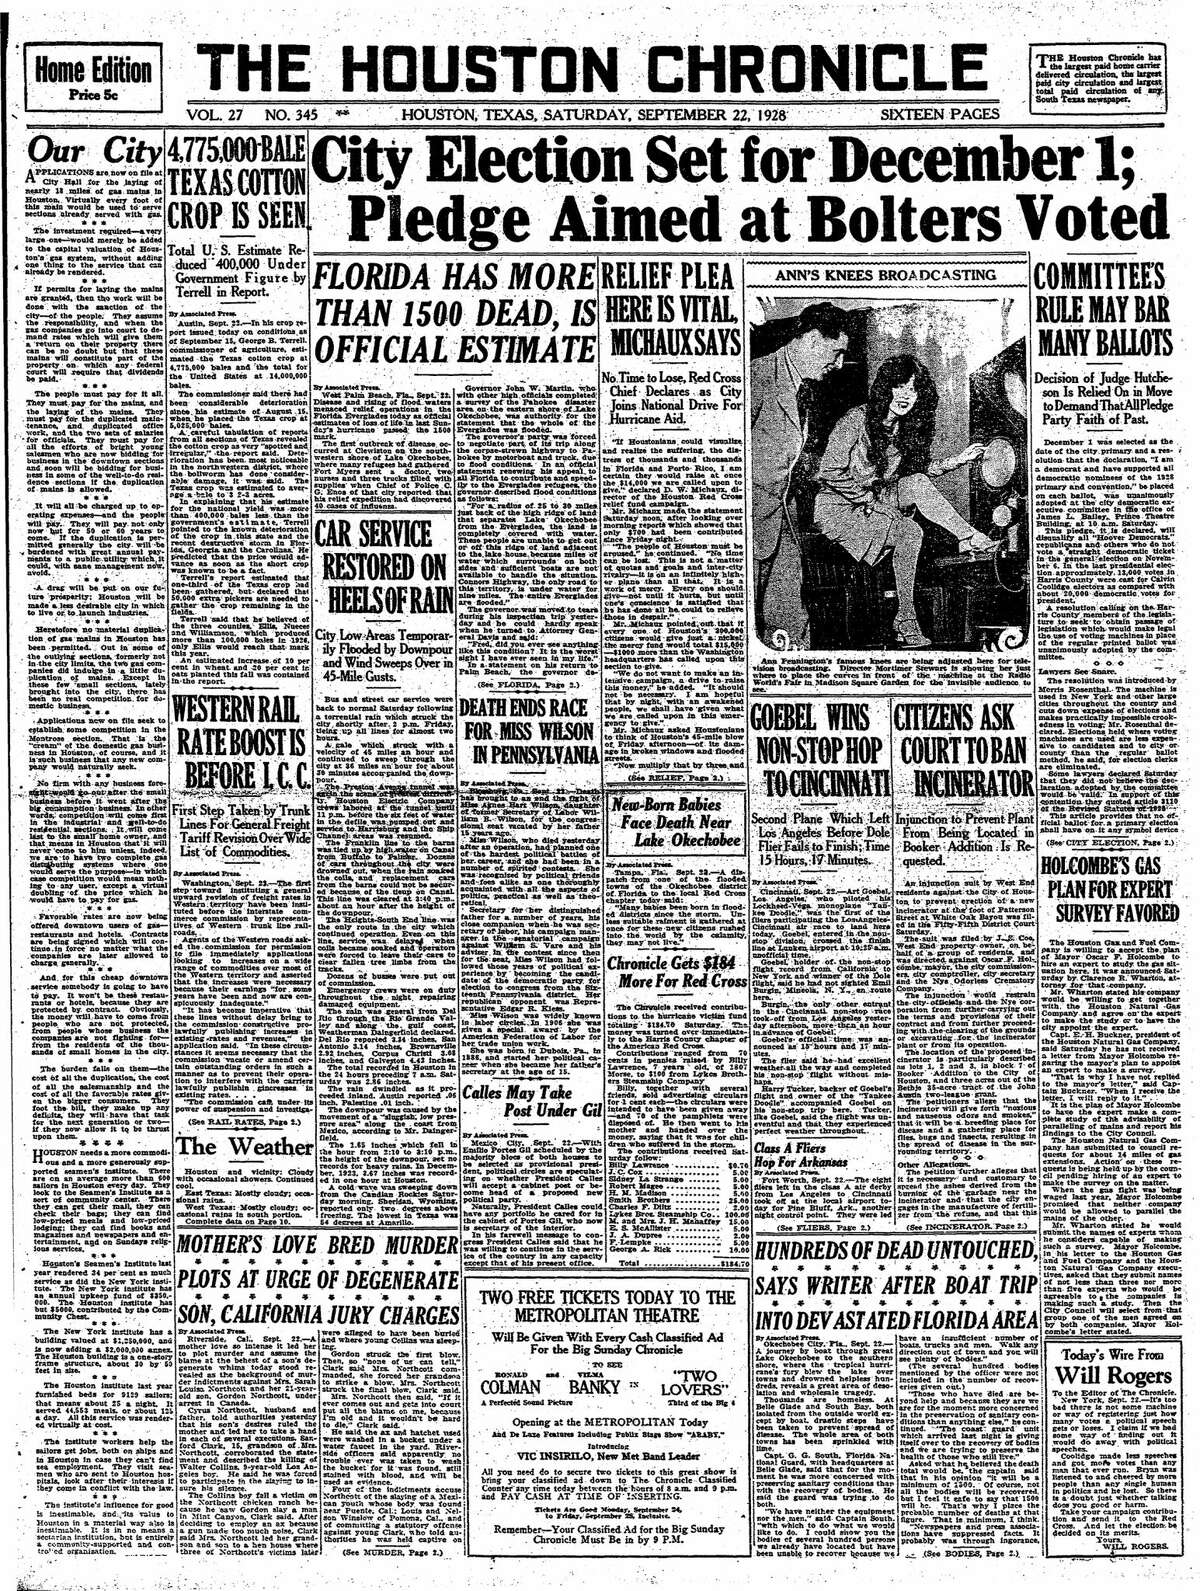 Houston Chronicle front page from Sept. 22, 1928.